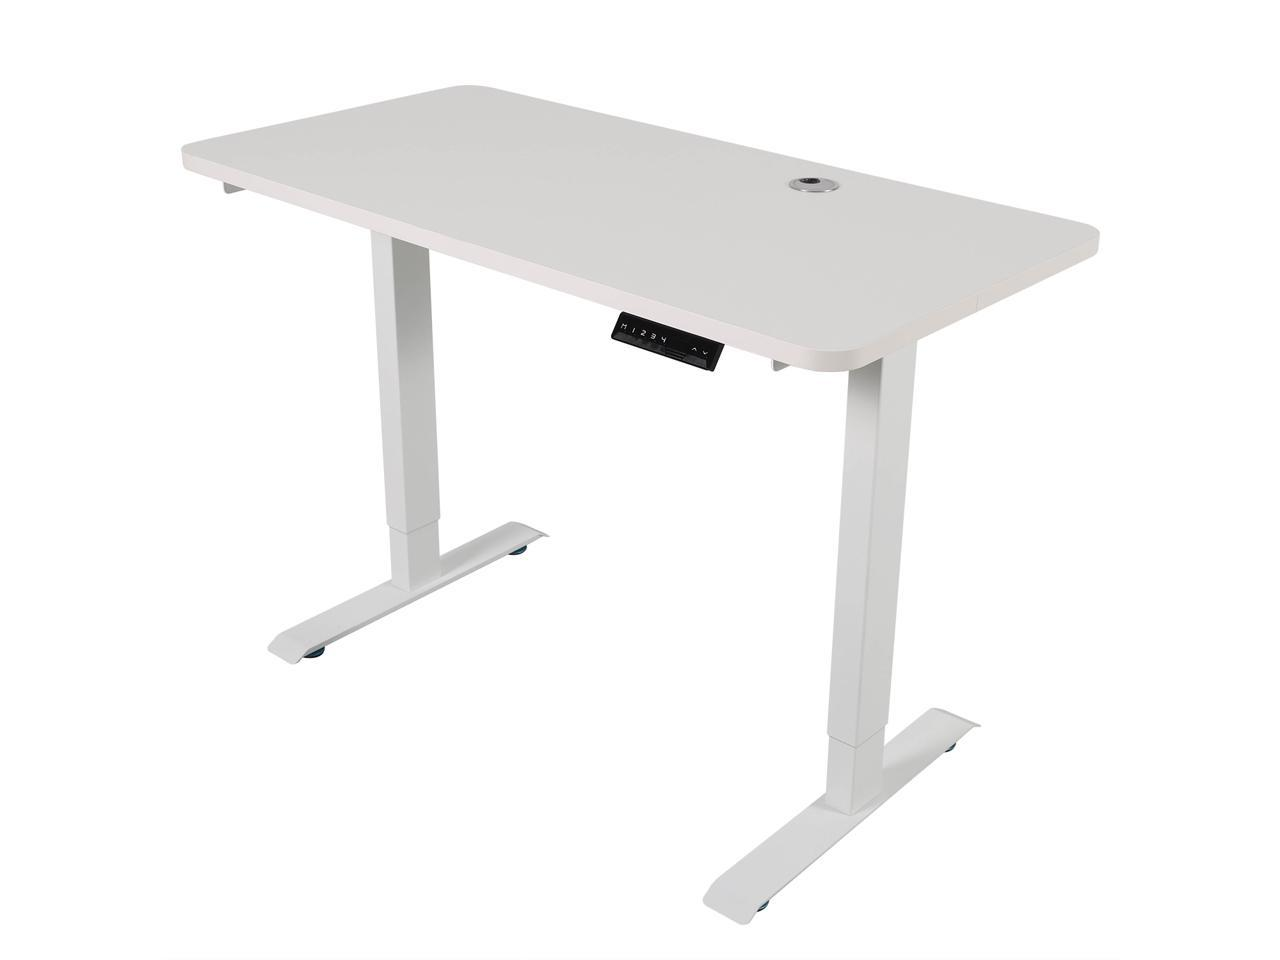 Walsport Electric Height Adjustable Gaming Desk Dual Motor 46 X 24 Inches Home Office Standing Computer Table Workstation Newegg Com